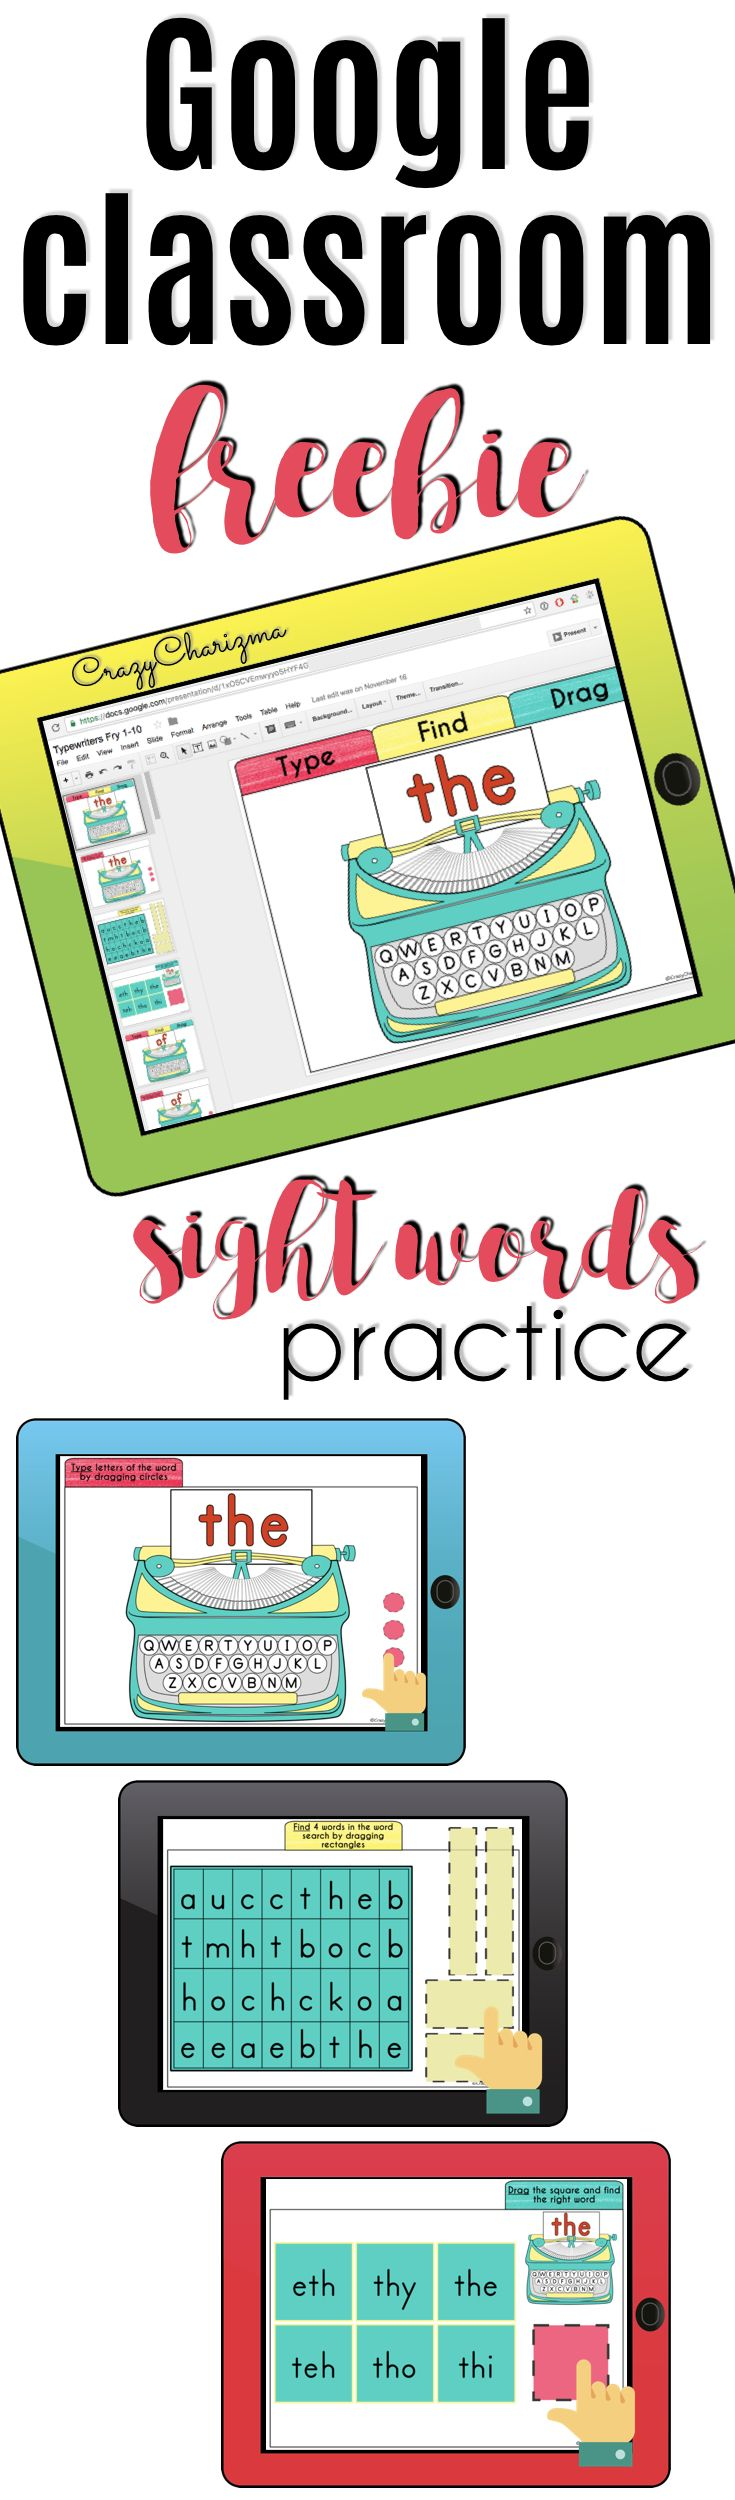 Go {Google} now! Would you like to go paperless and engage your kids? Looking for something you can use over and over? Embrace technology - use Google Classroom now! Practice THE sight word with these digital typewriters. | CrazyCharizma